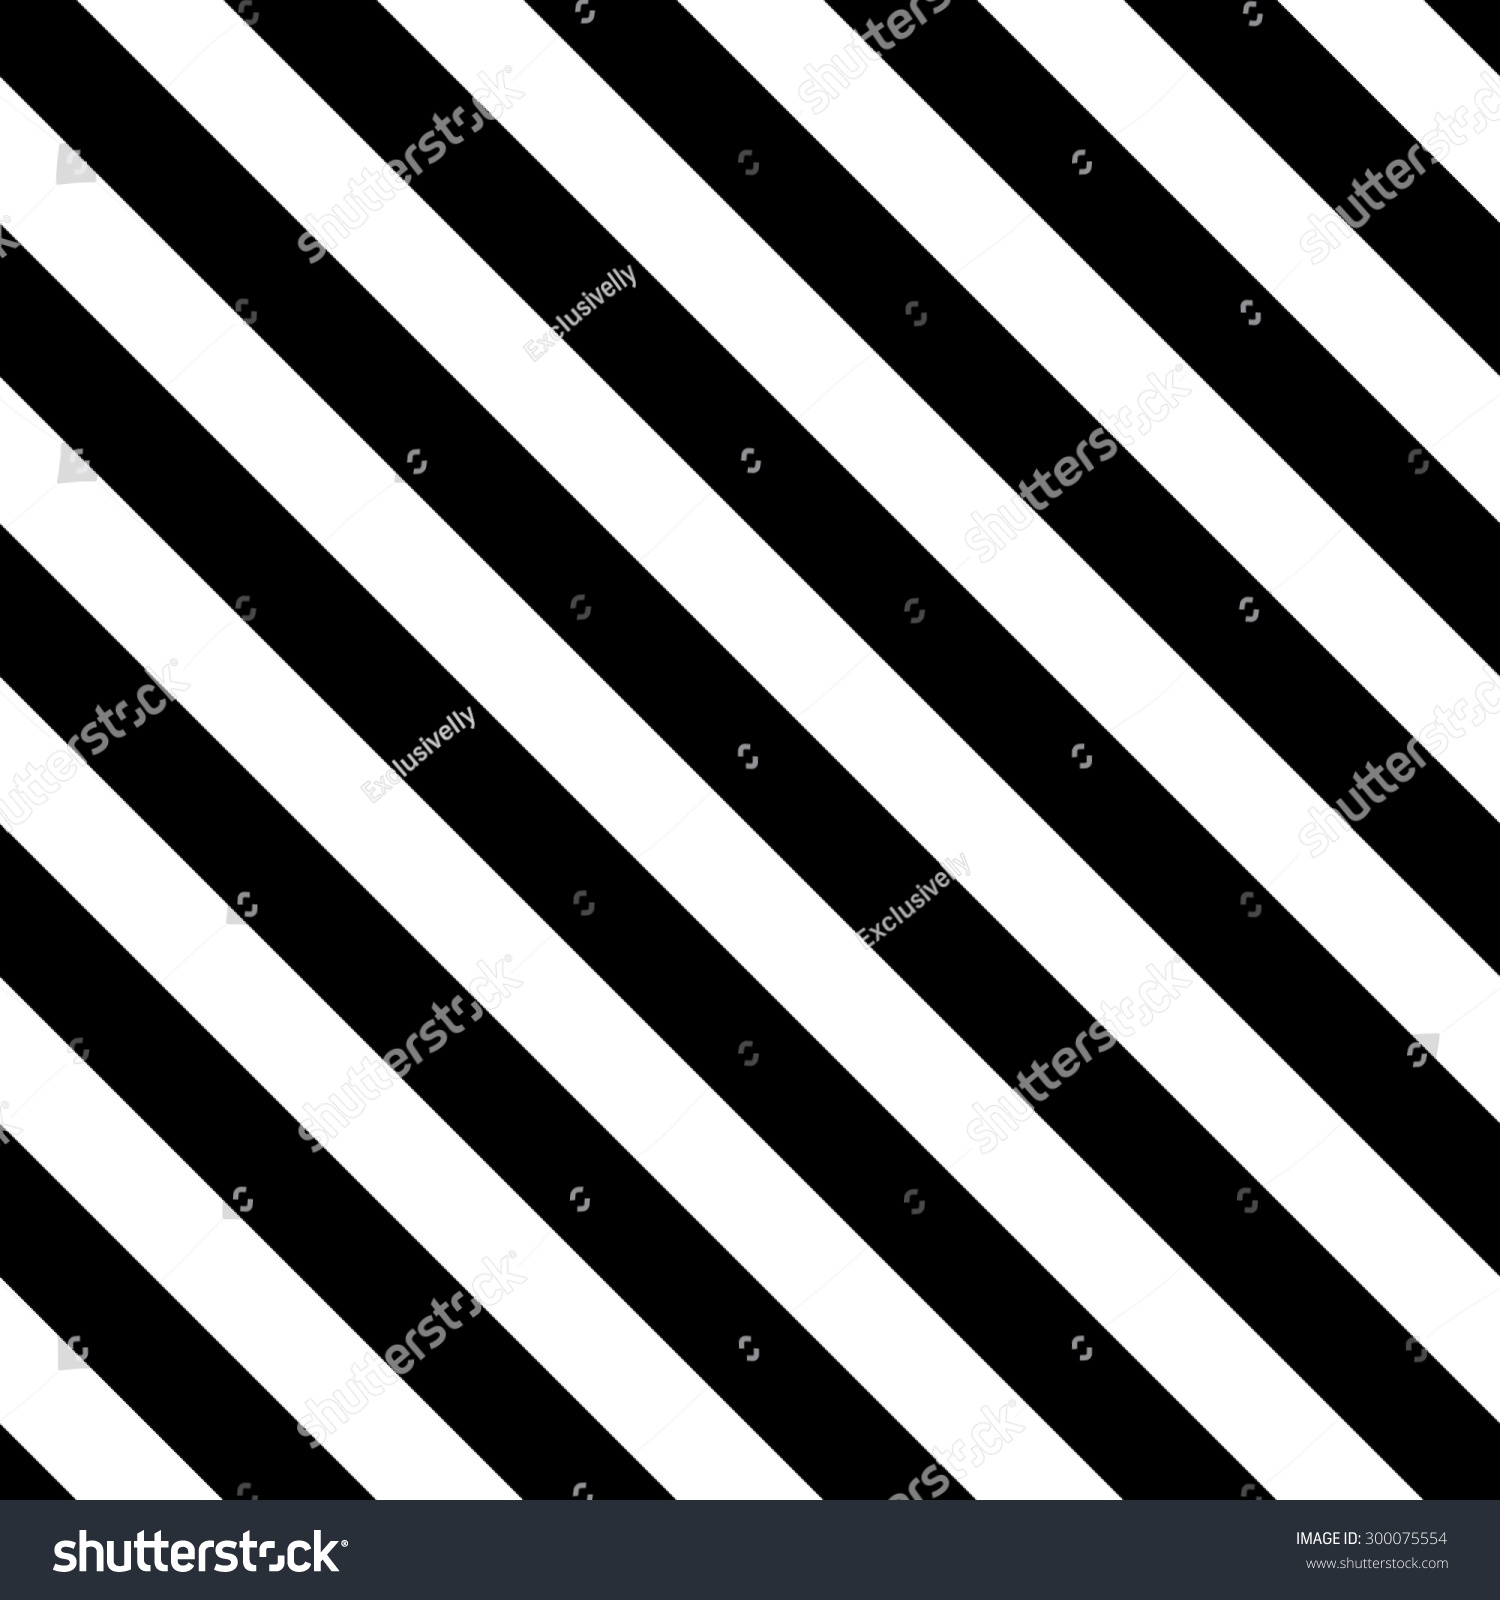 Black And White Diagonal Lines. Seamless Striped Background. Vector Simple  Modern Texture